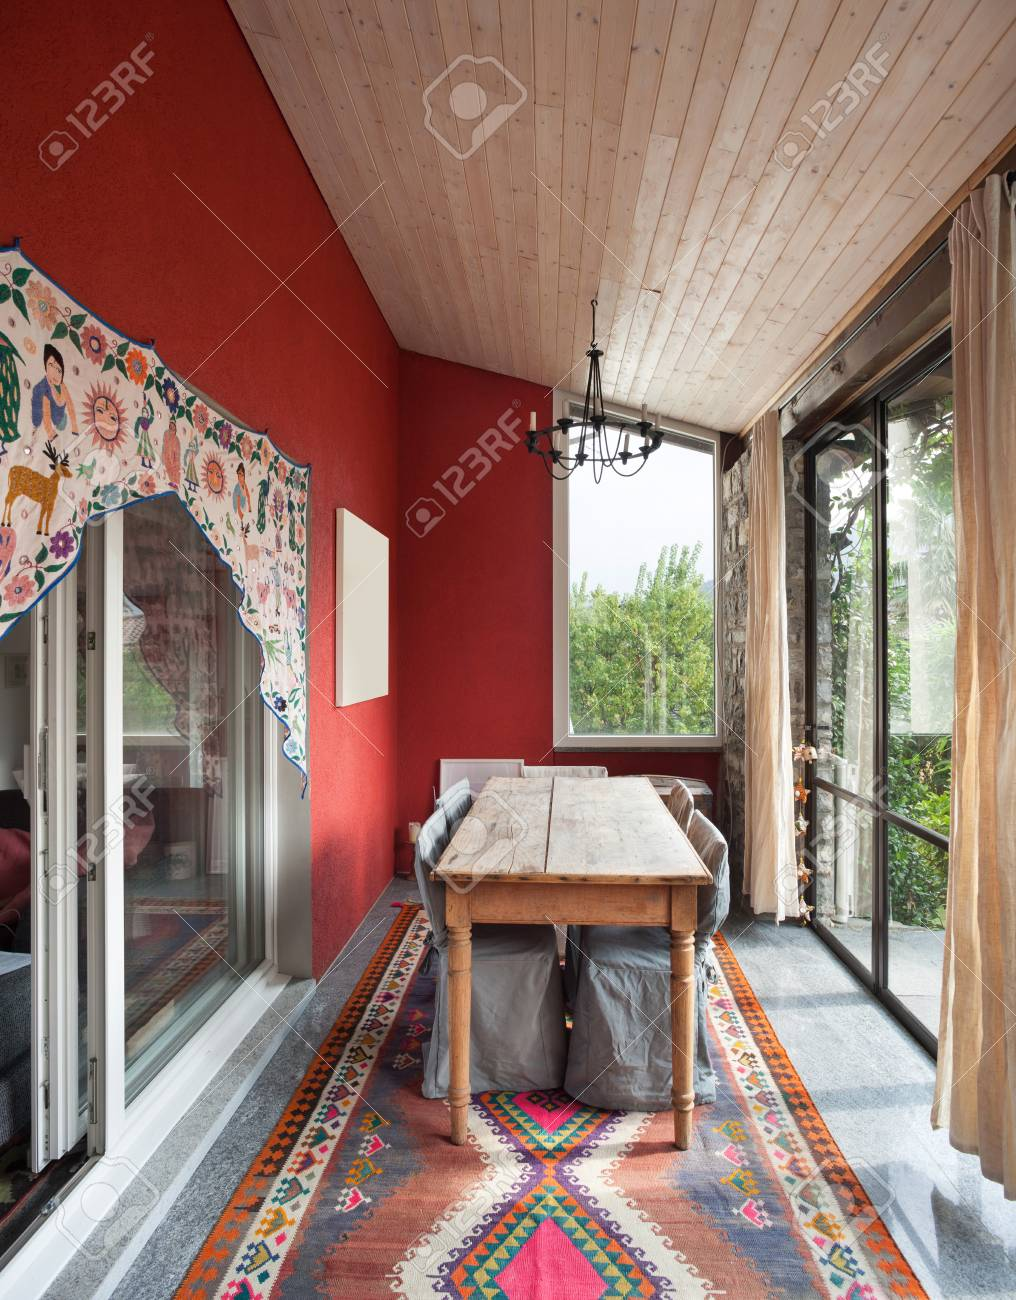 Interior Veranda With Old Dining Table Carpet On The Floor Stock Photo